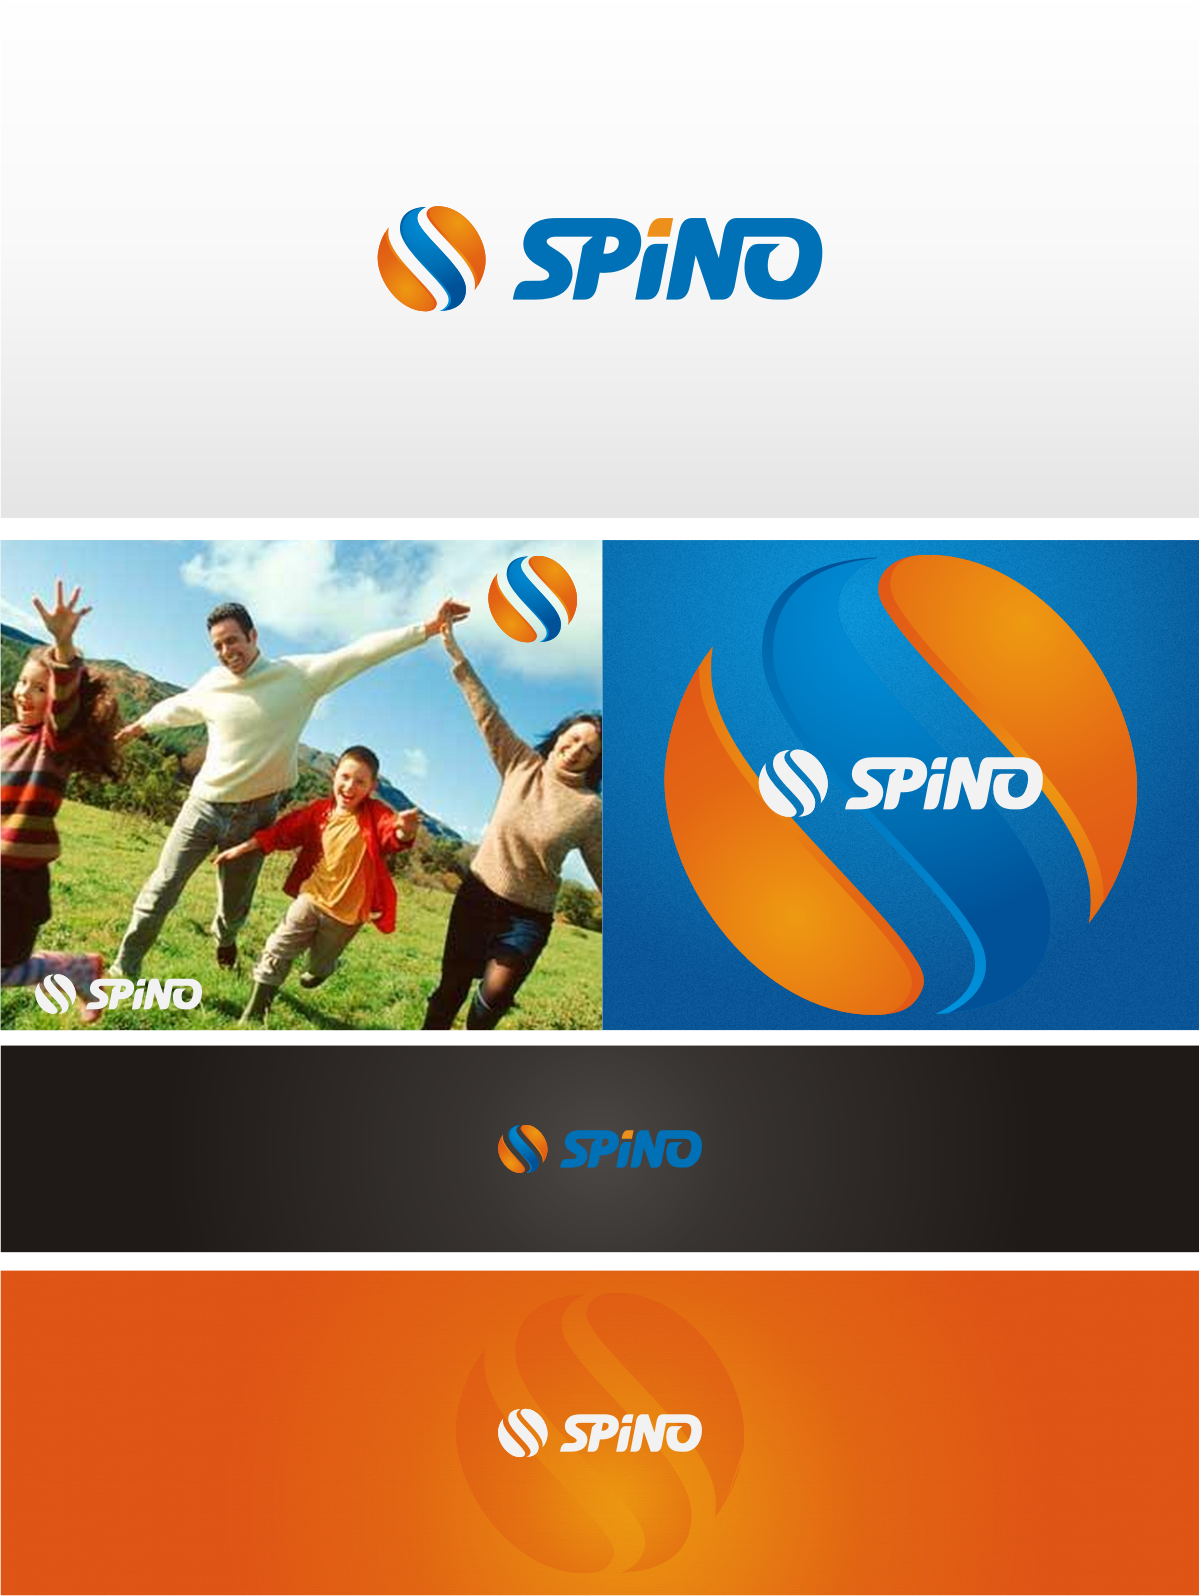 Create the next logo for Spino